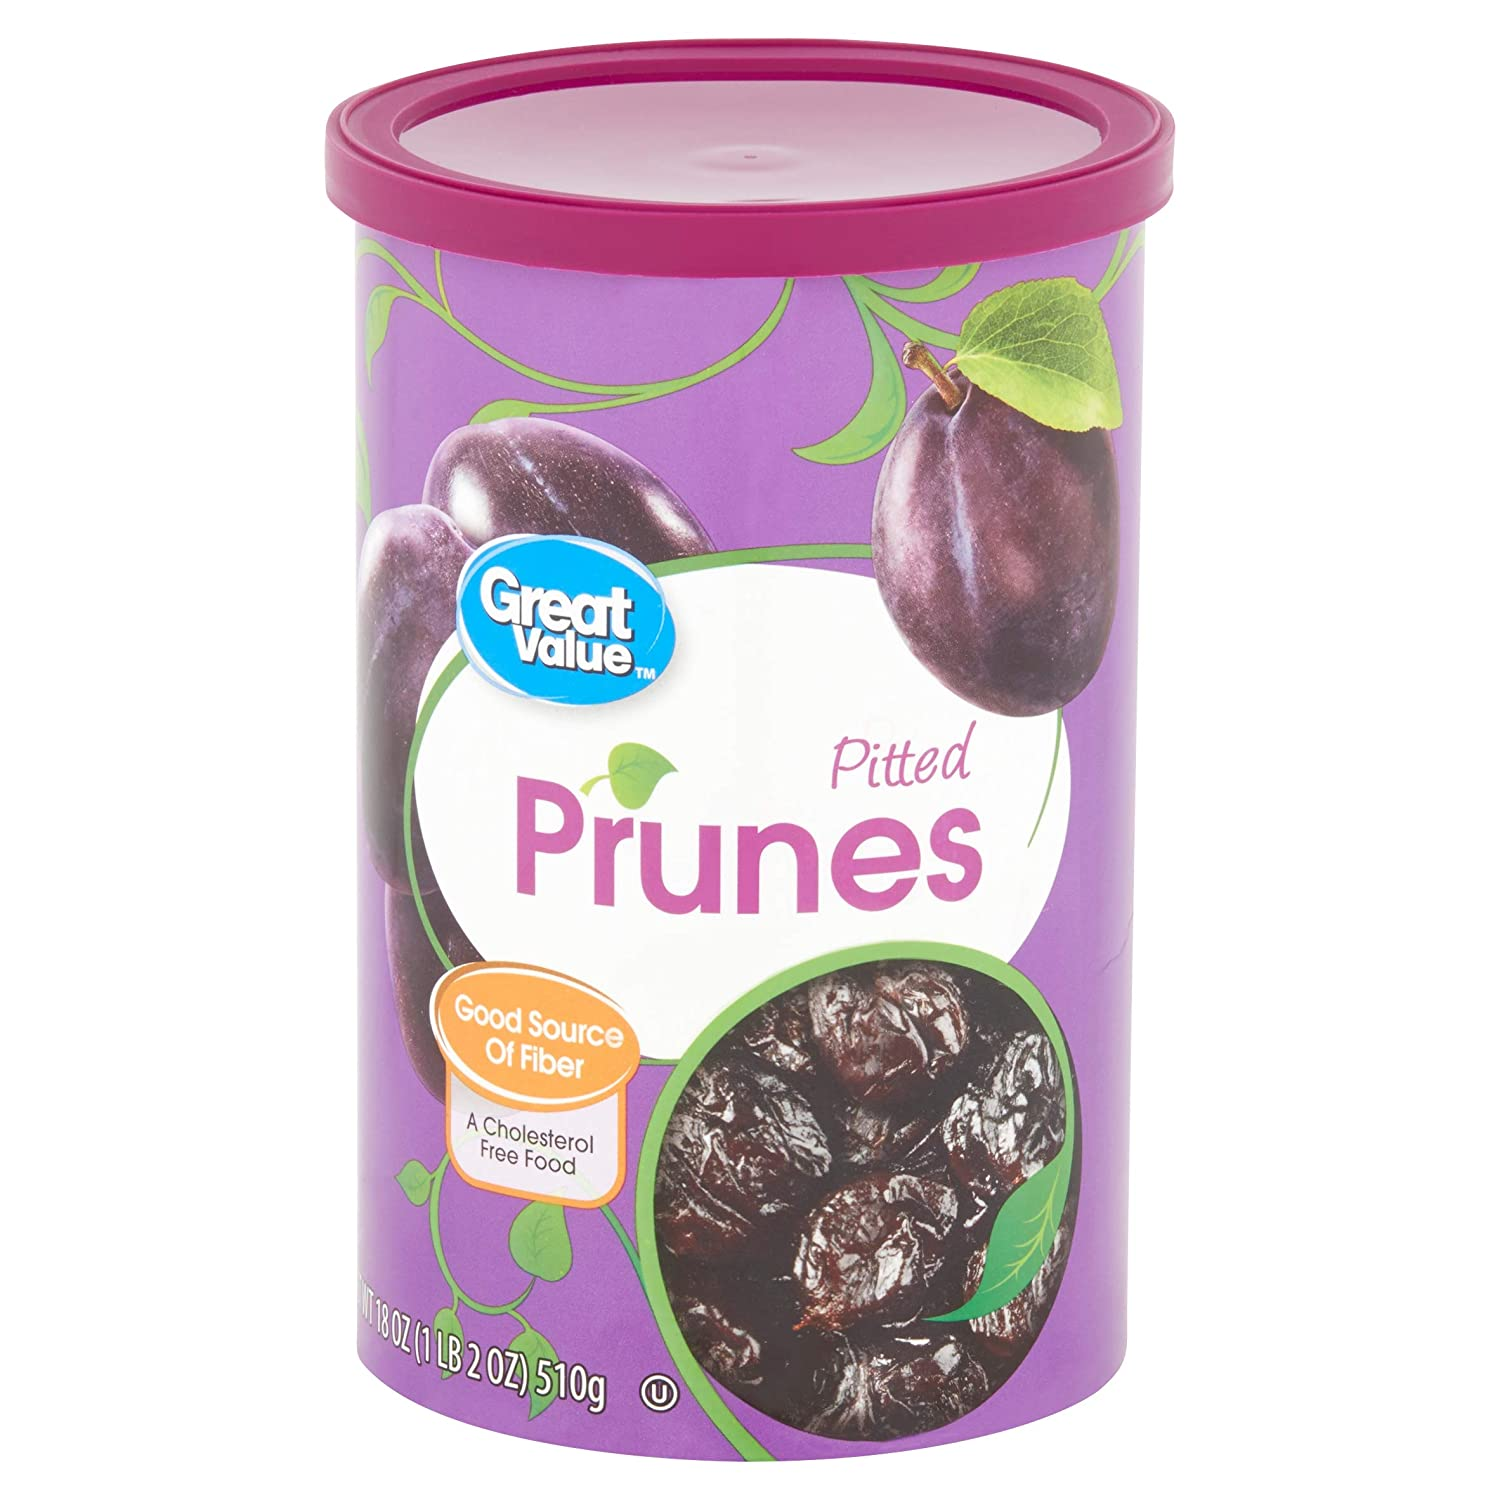 18 Oz Great Value Pitted Dried Prunes (Pack of 6)